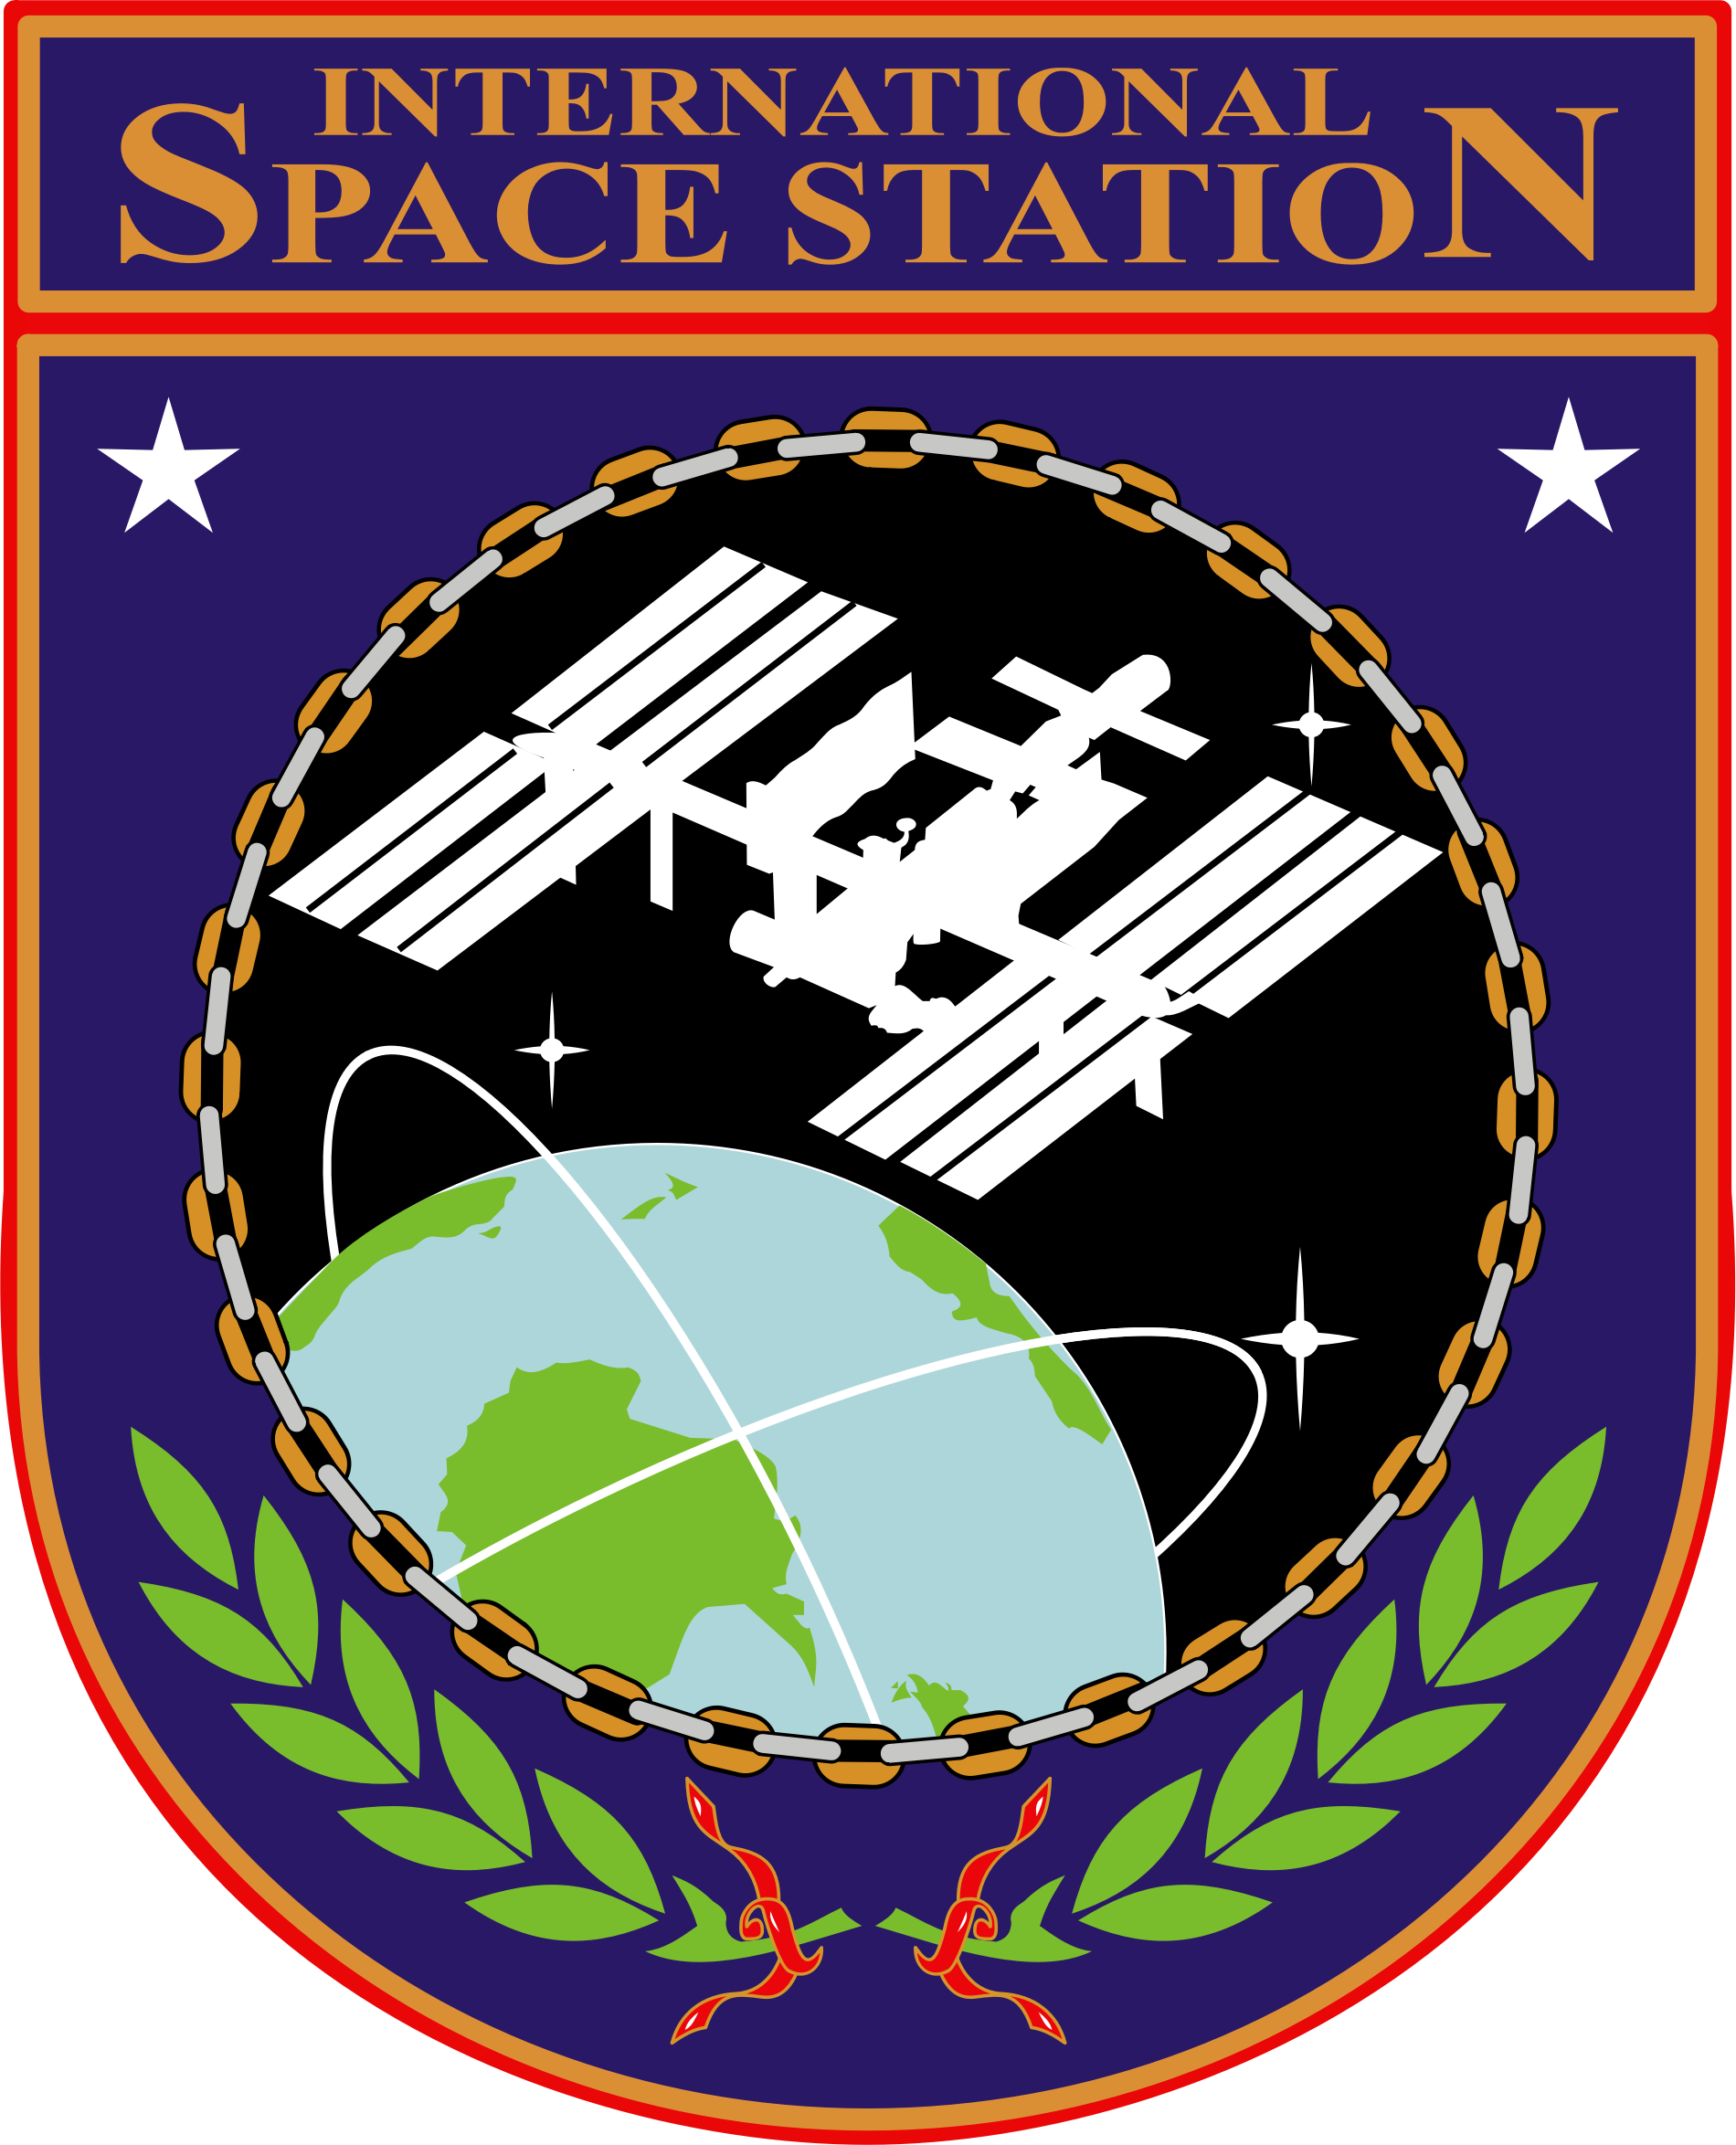 ISS Insignia by NASA